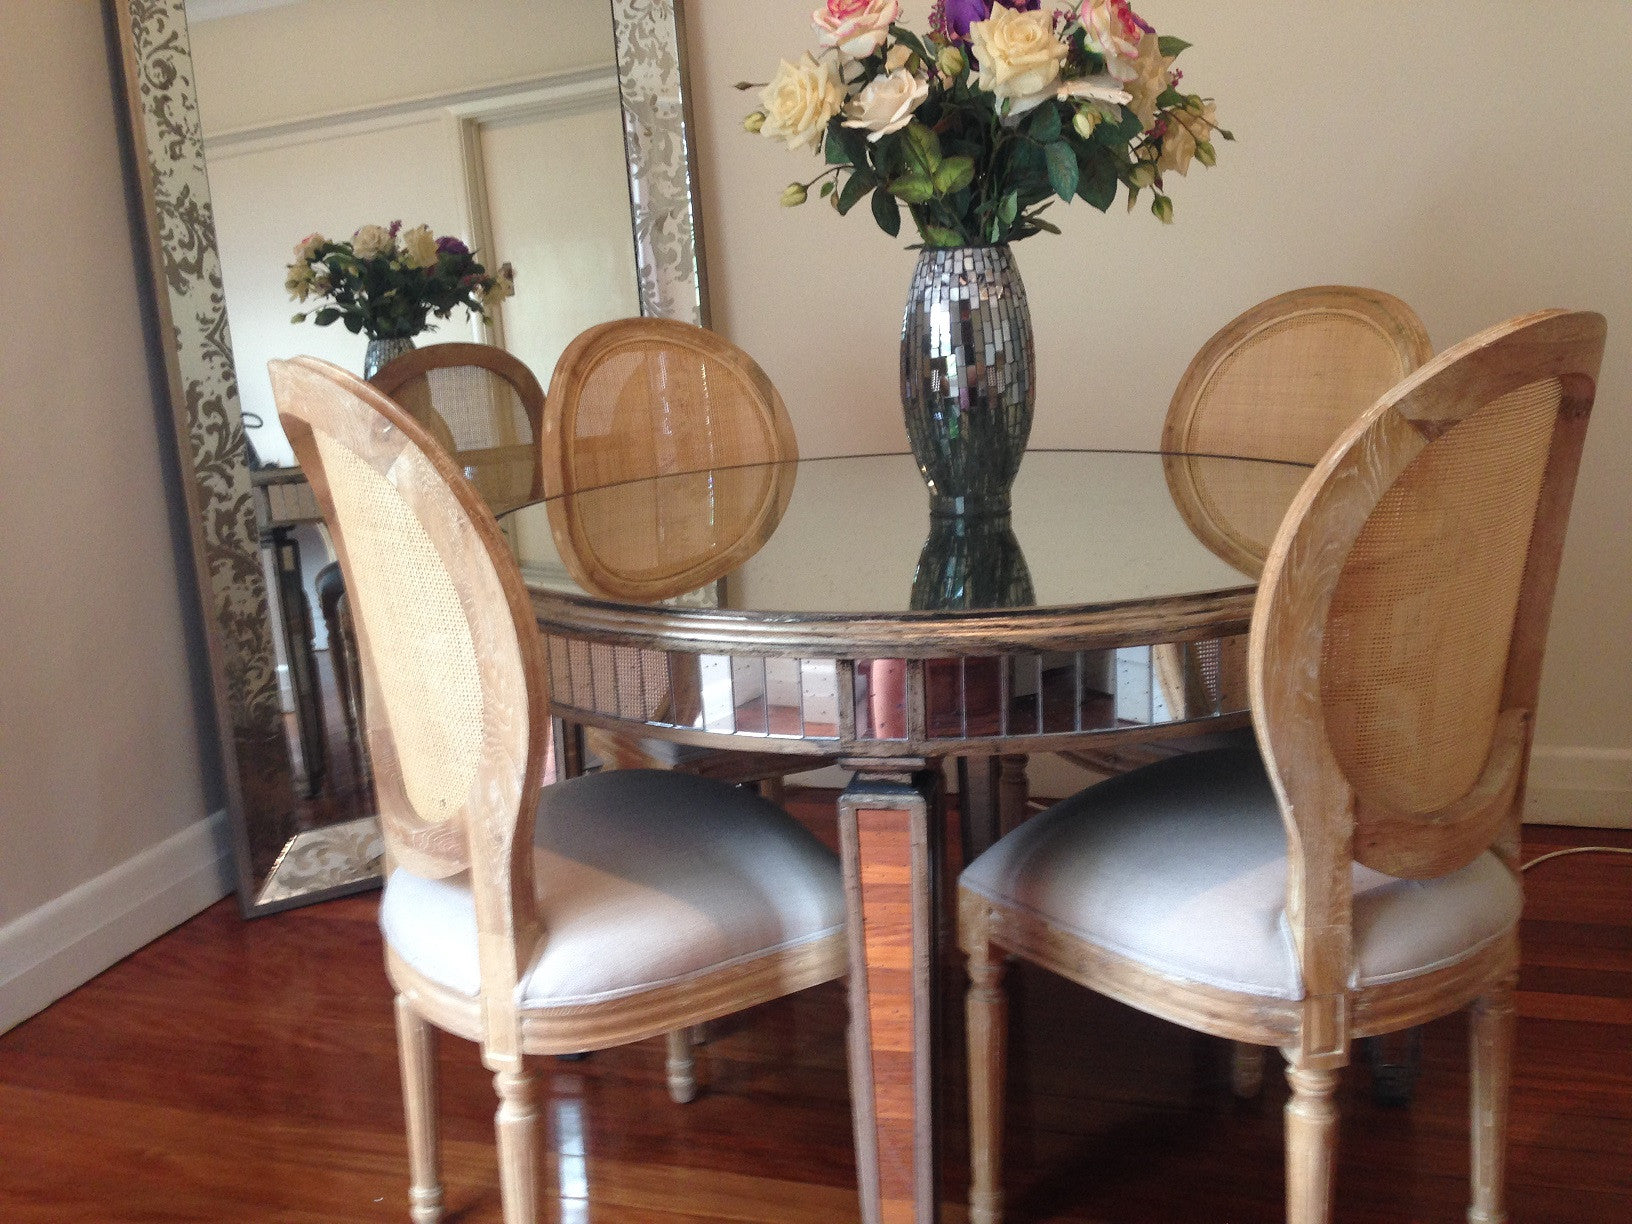 Four Seater Round Dining Setting Wisteria Homeware and Living